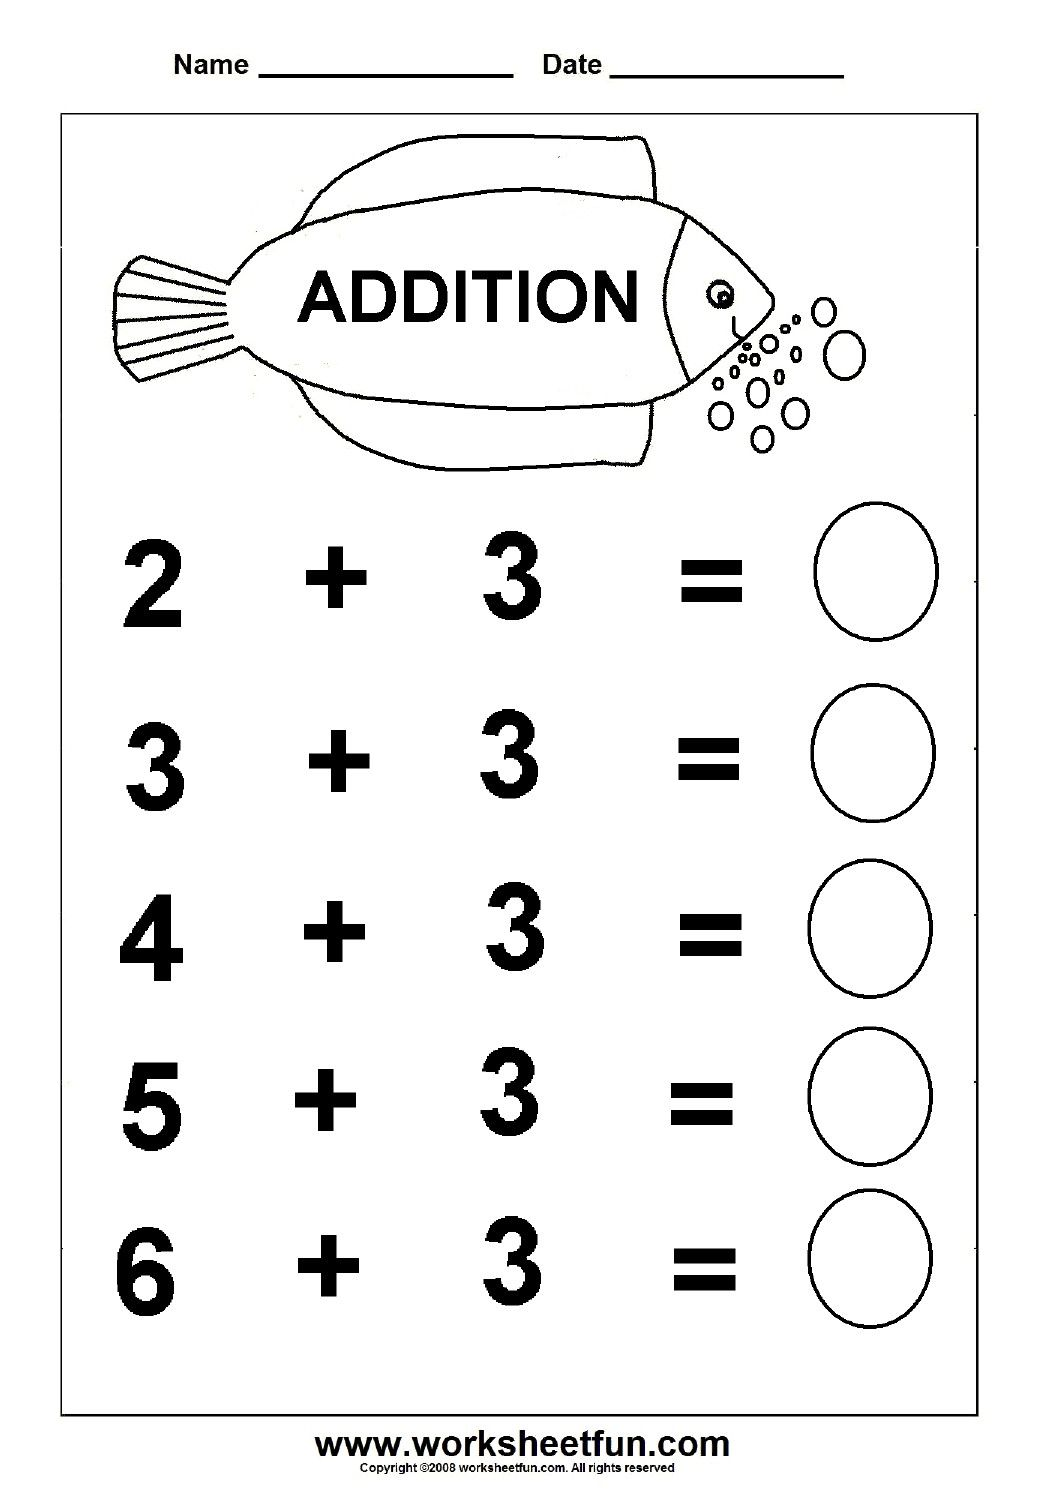 4 Worksheet Addition And Subtraction For Kids In